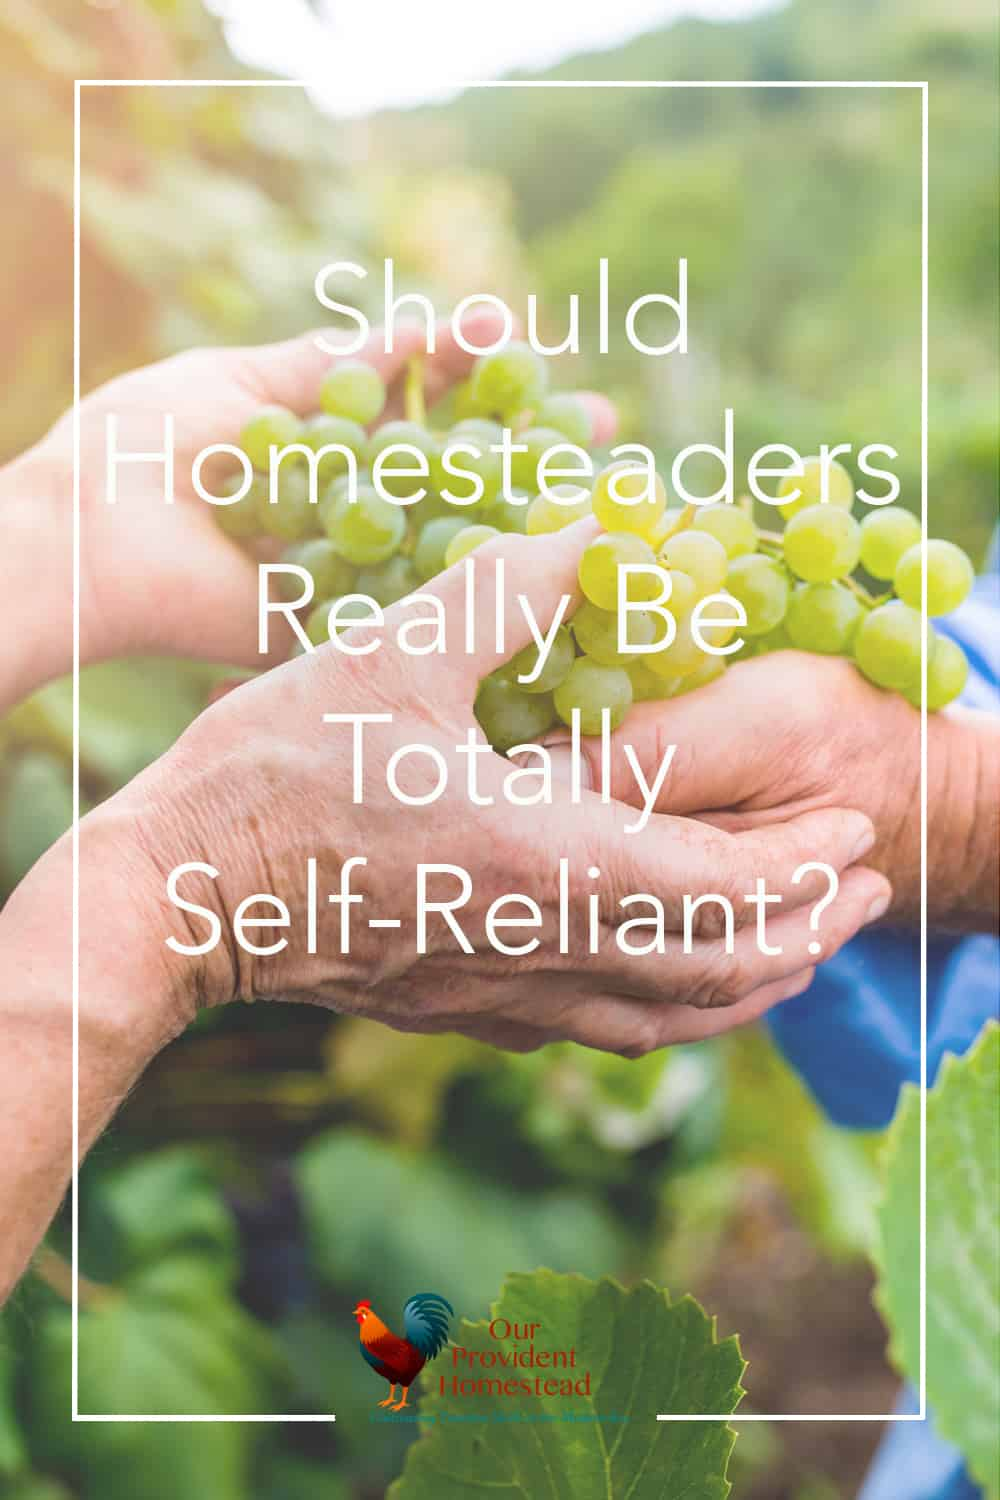 Are homesteaders really self-reliant? Click here to see why even though we work towards the goal of self-reliance, we don't want to get there. Community | Self-Reliance | Homesteading